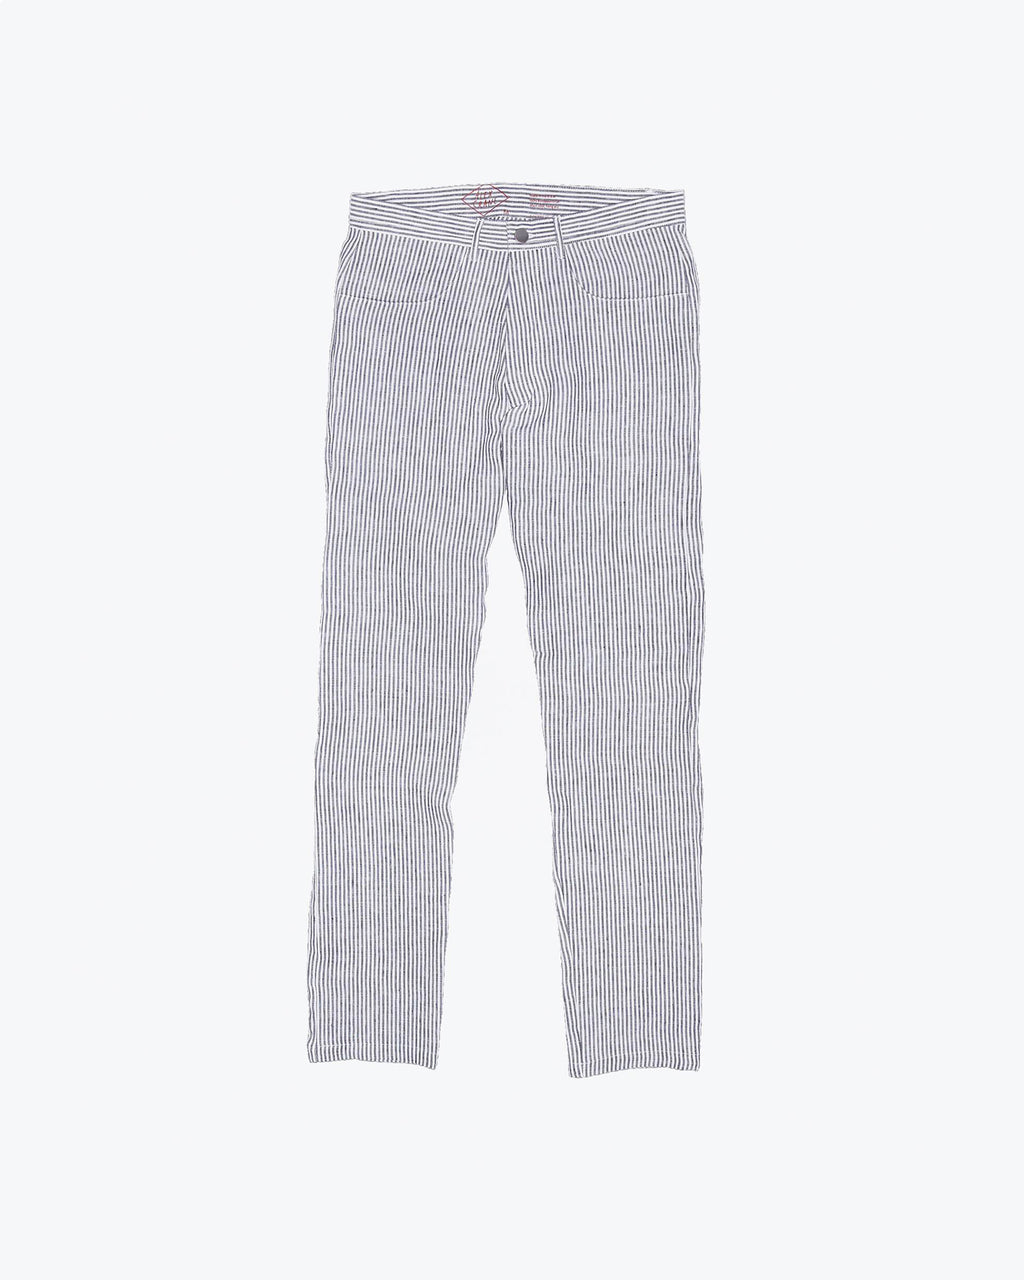 Men's Cham Pants / Lines